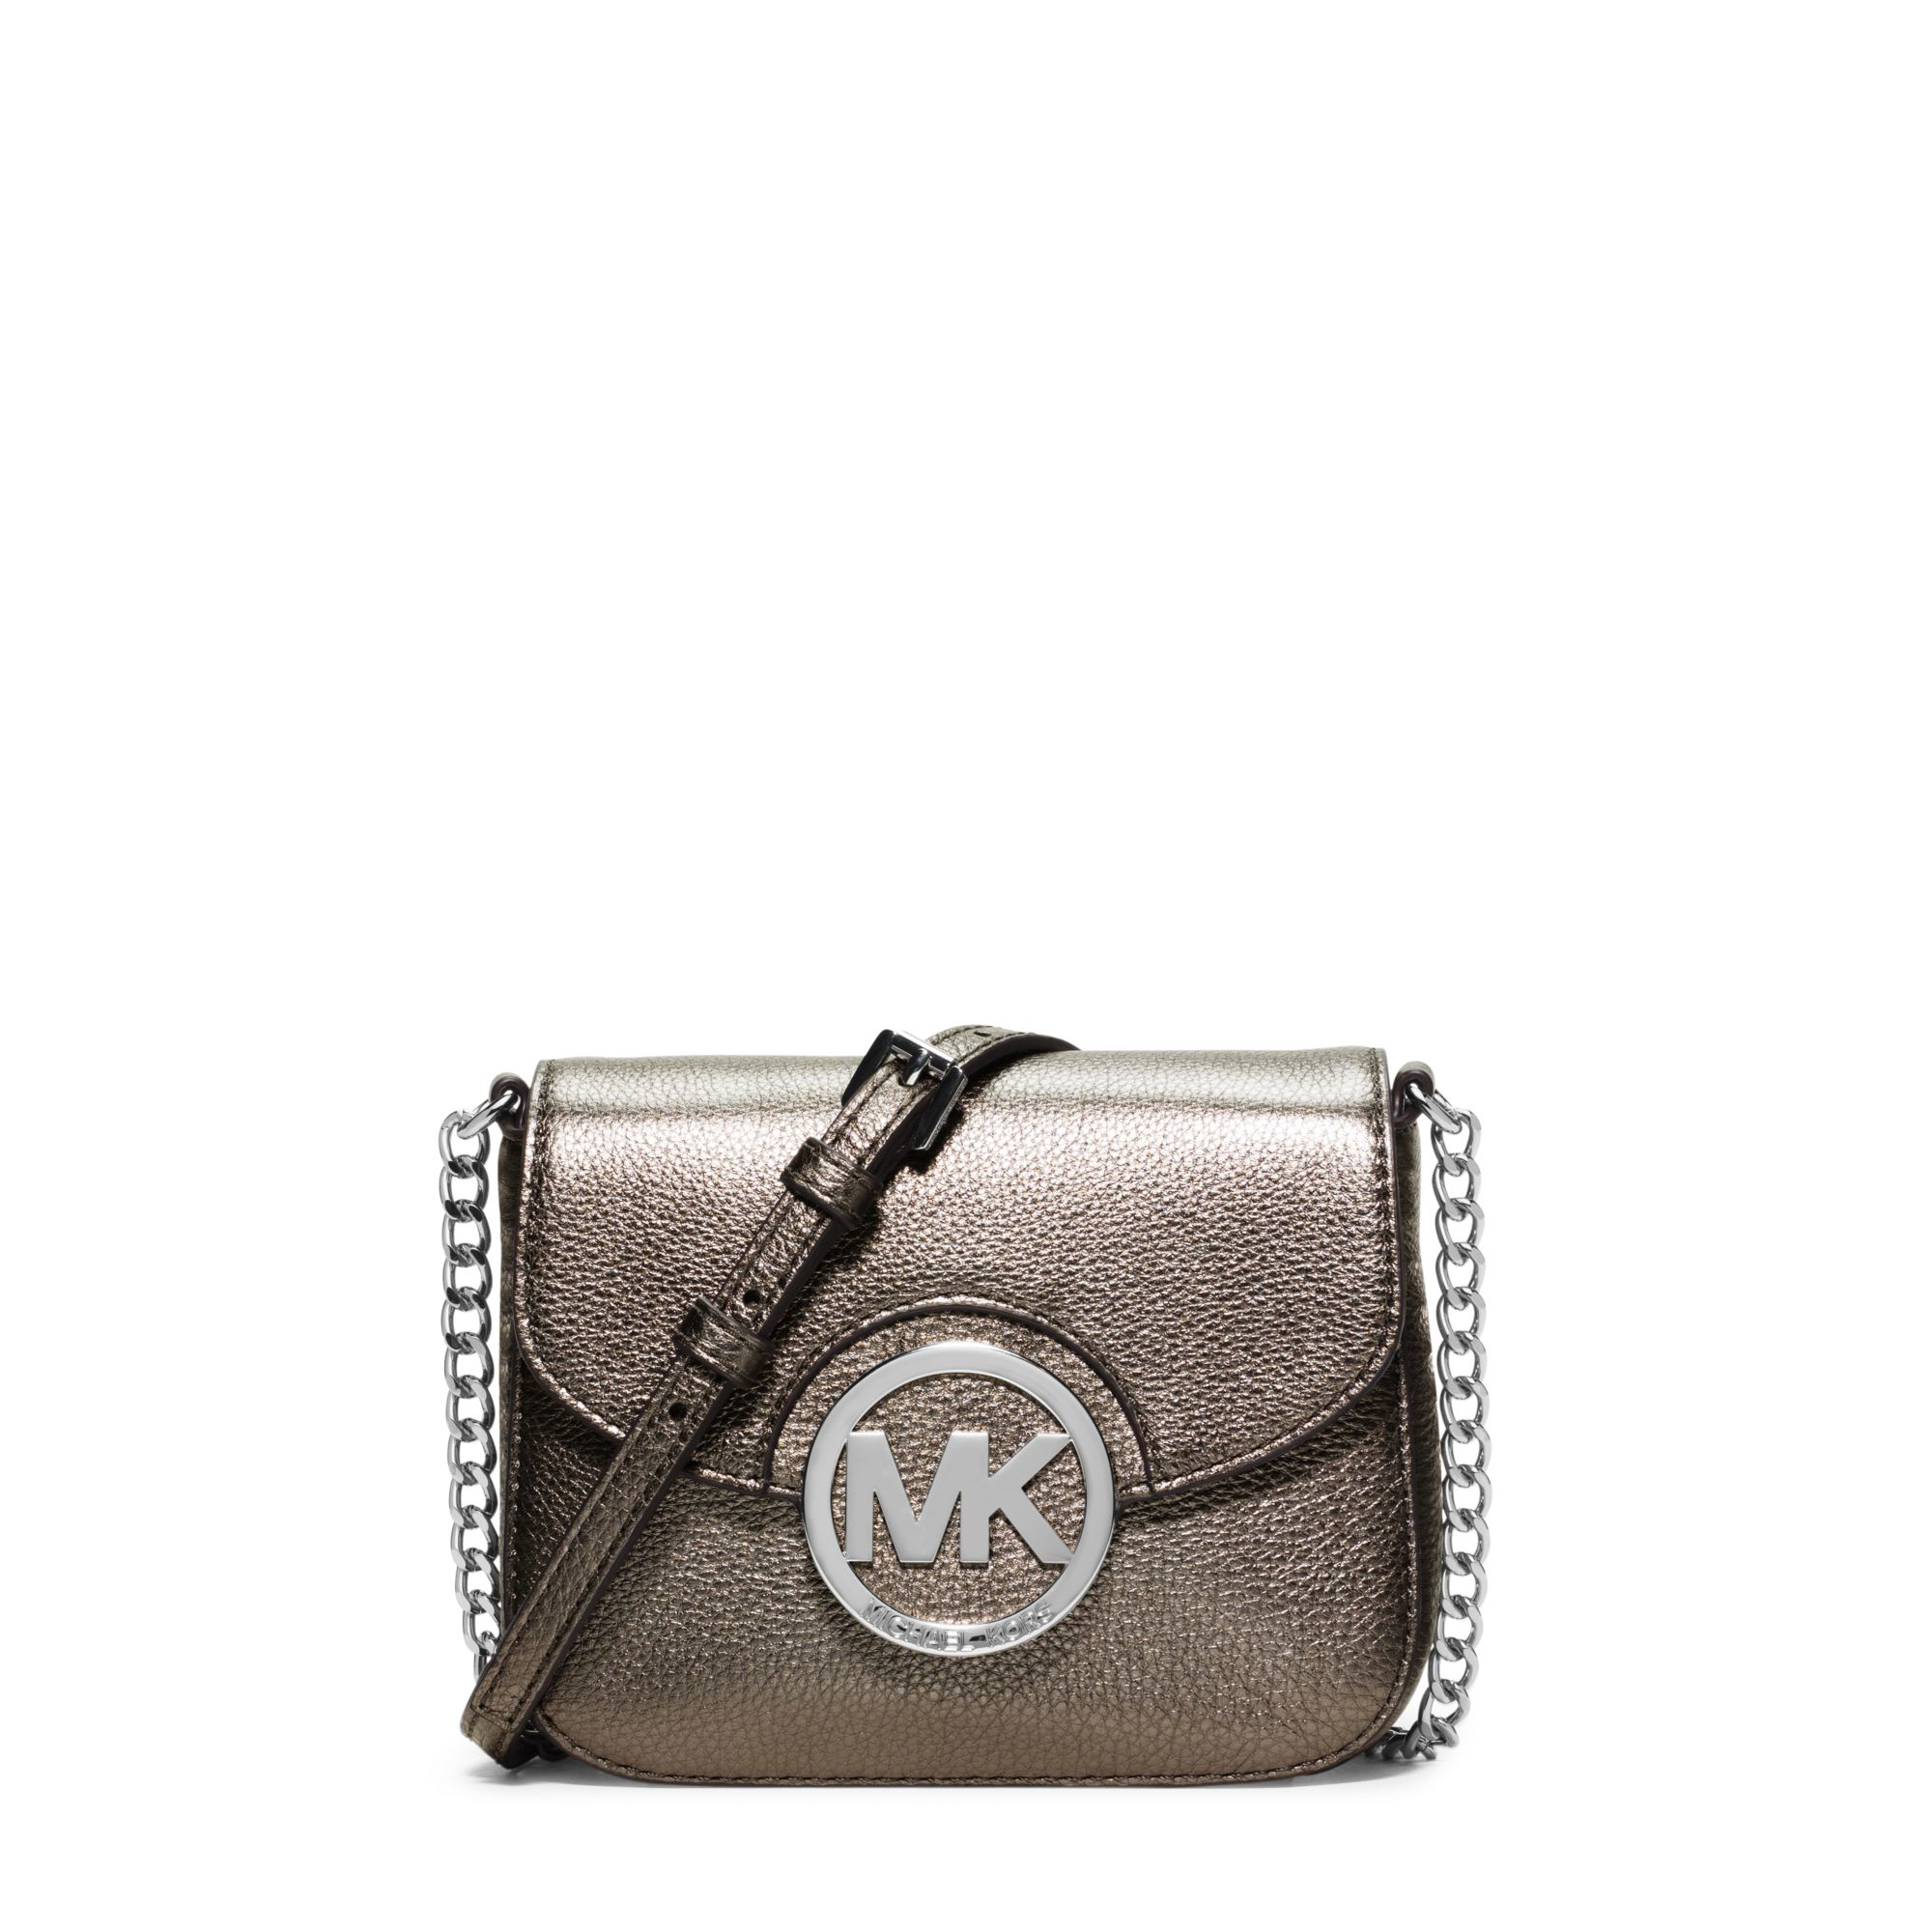 268cde75251c2 Lyst - Michael Kors Fulton Small Metallic Leather Crossbody in Metallic